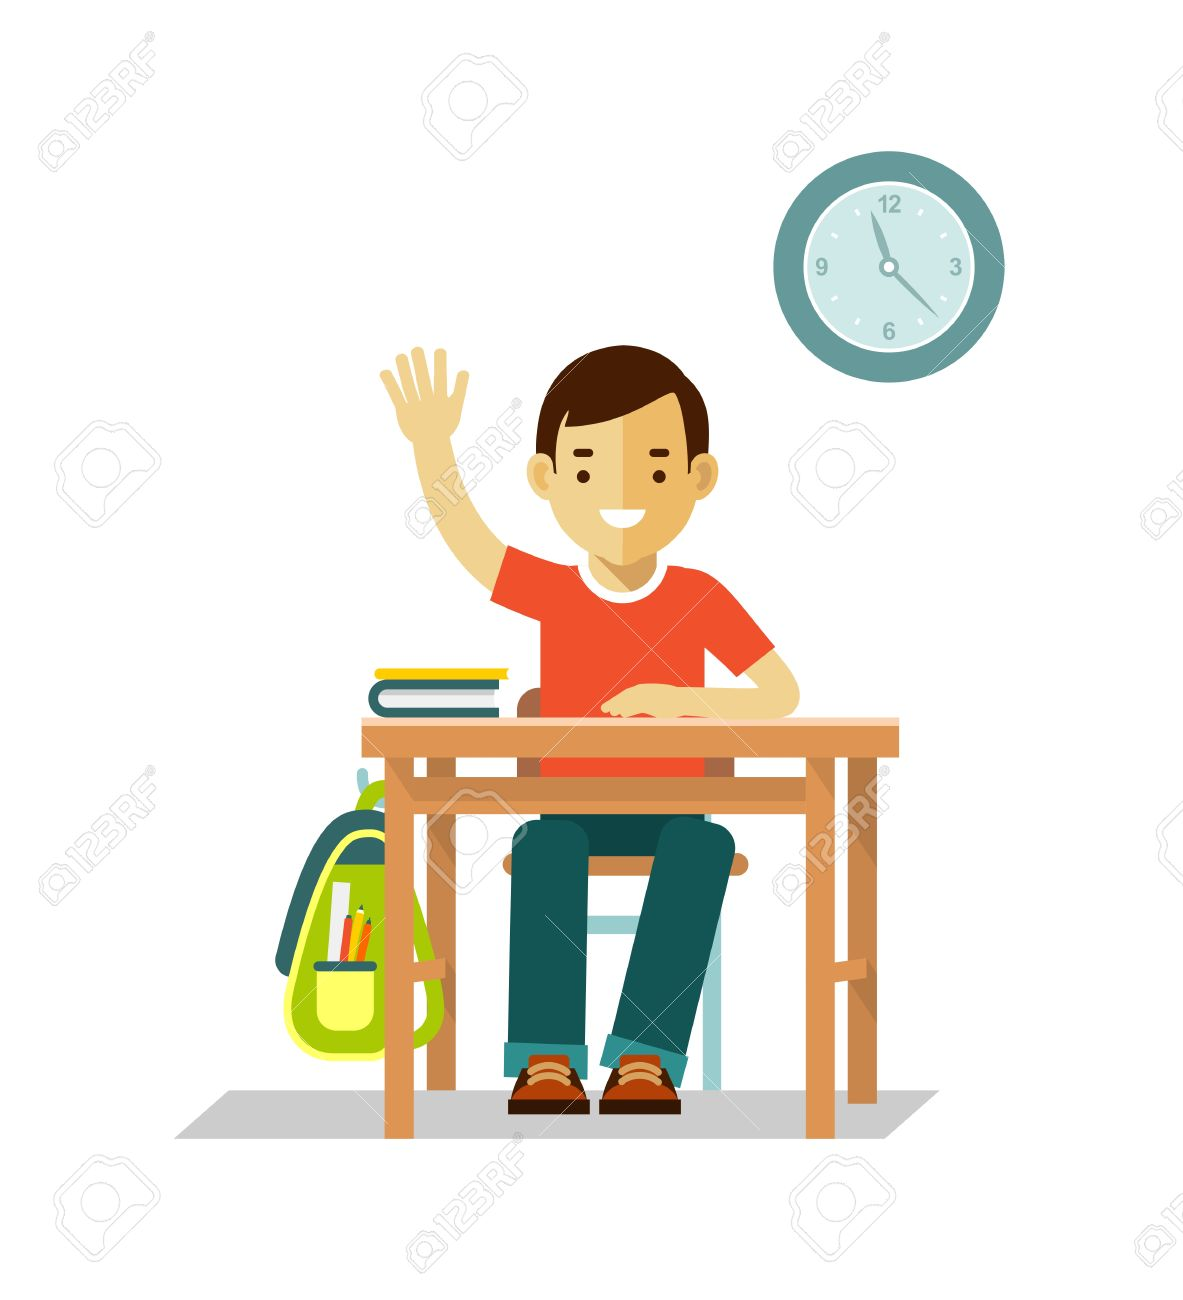 student boy sit at desk in classroom isolated on white background rh 123rf com Student Sitting at Desk with Head Down Clip Art Student Sitting at Desk Doing a Puzzle Clip Art